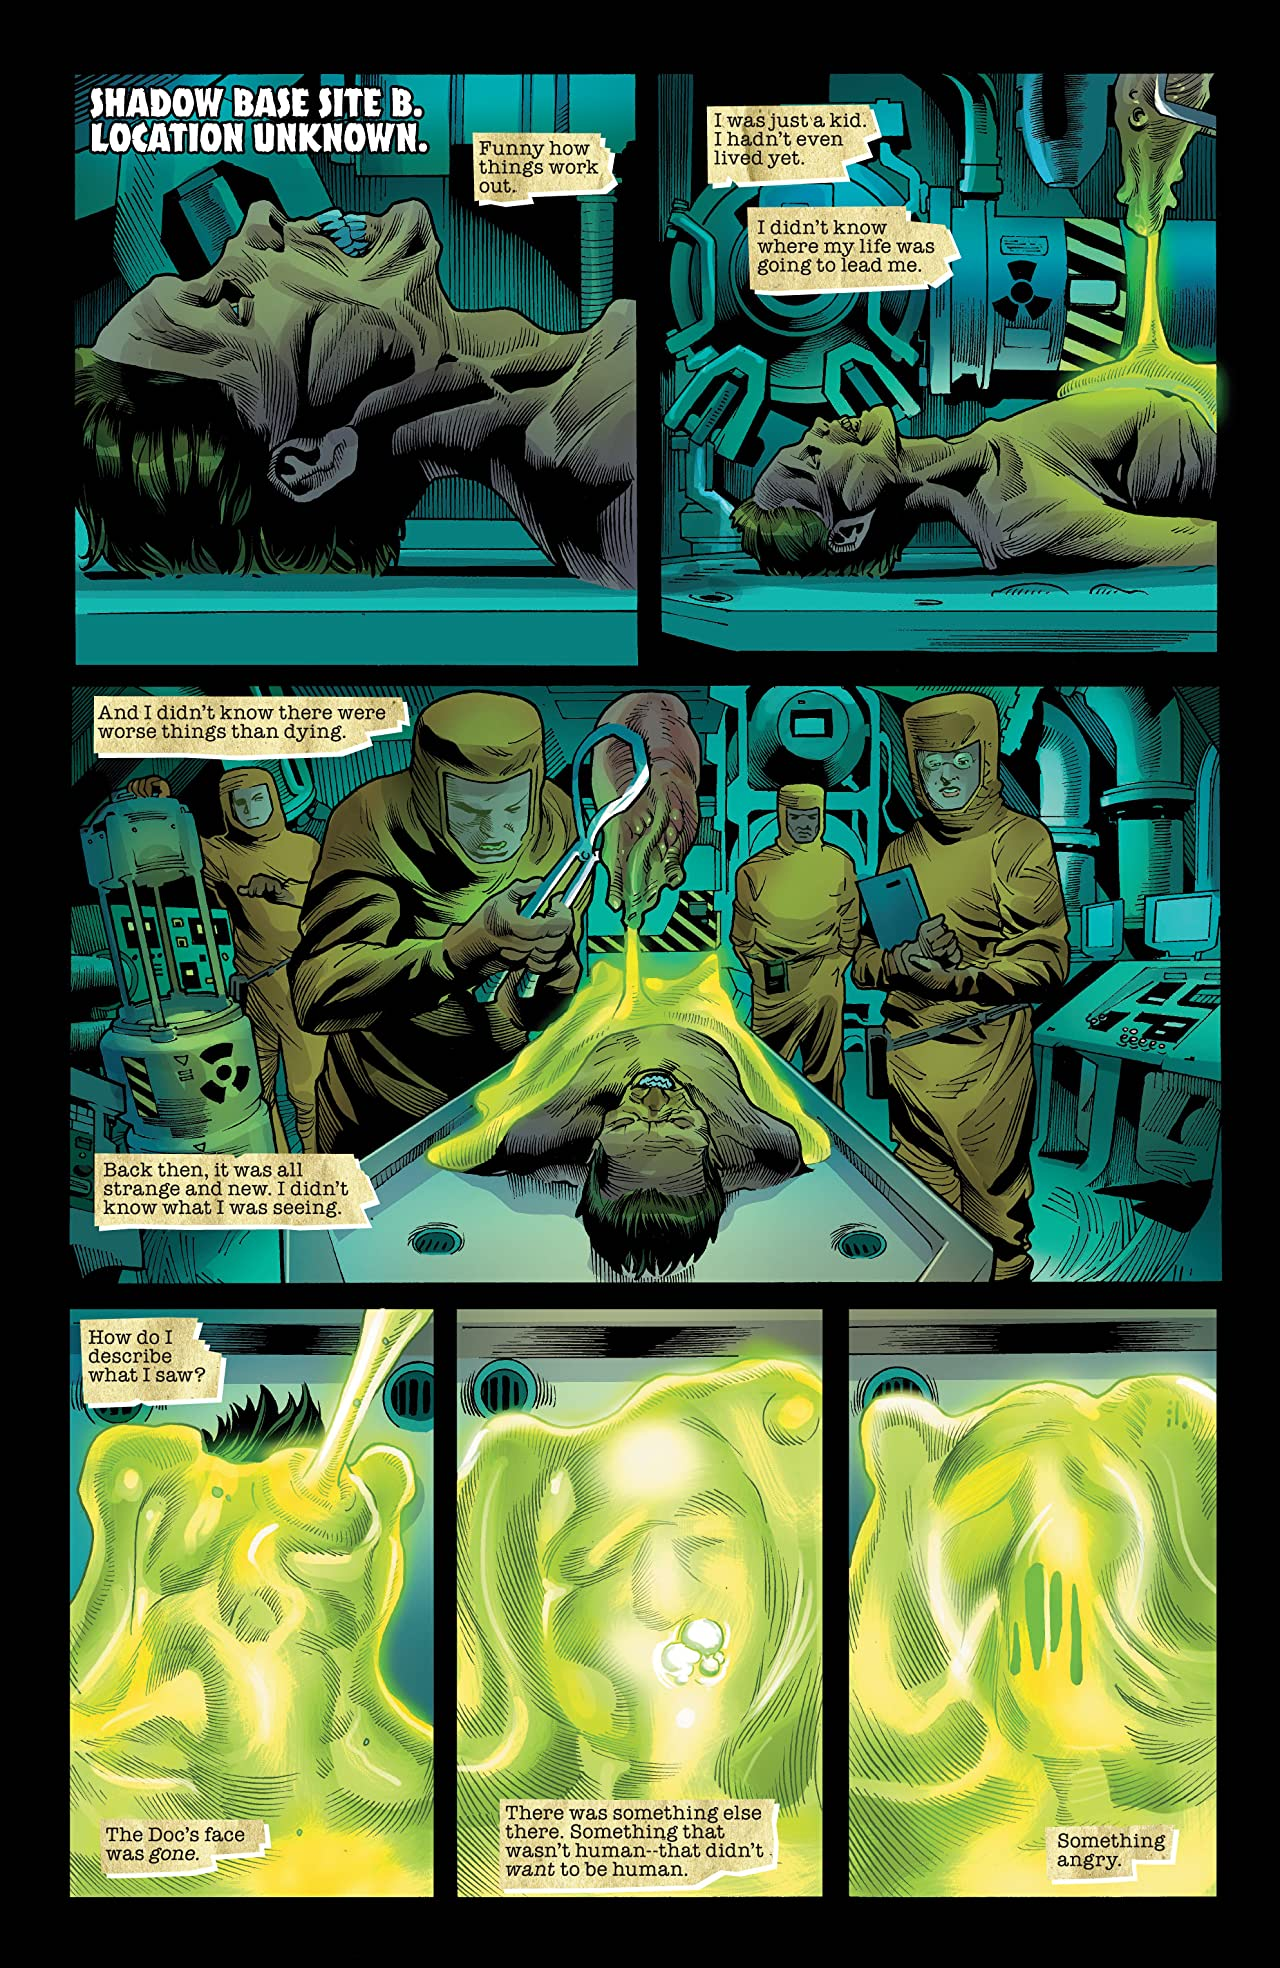 Immortal Hulk Vol. 4: Abomination